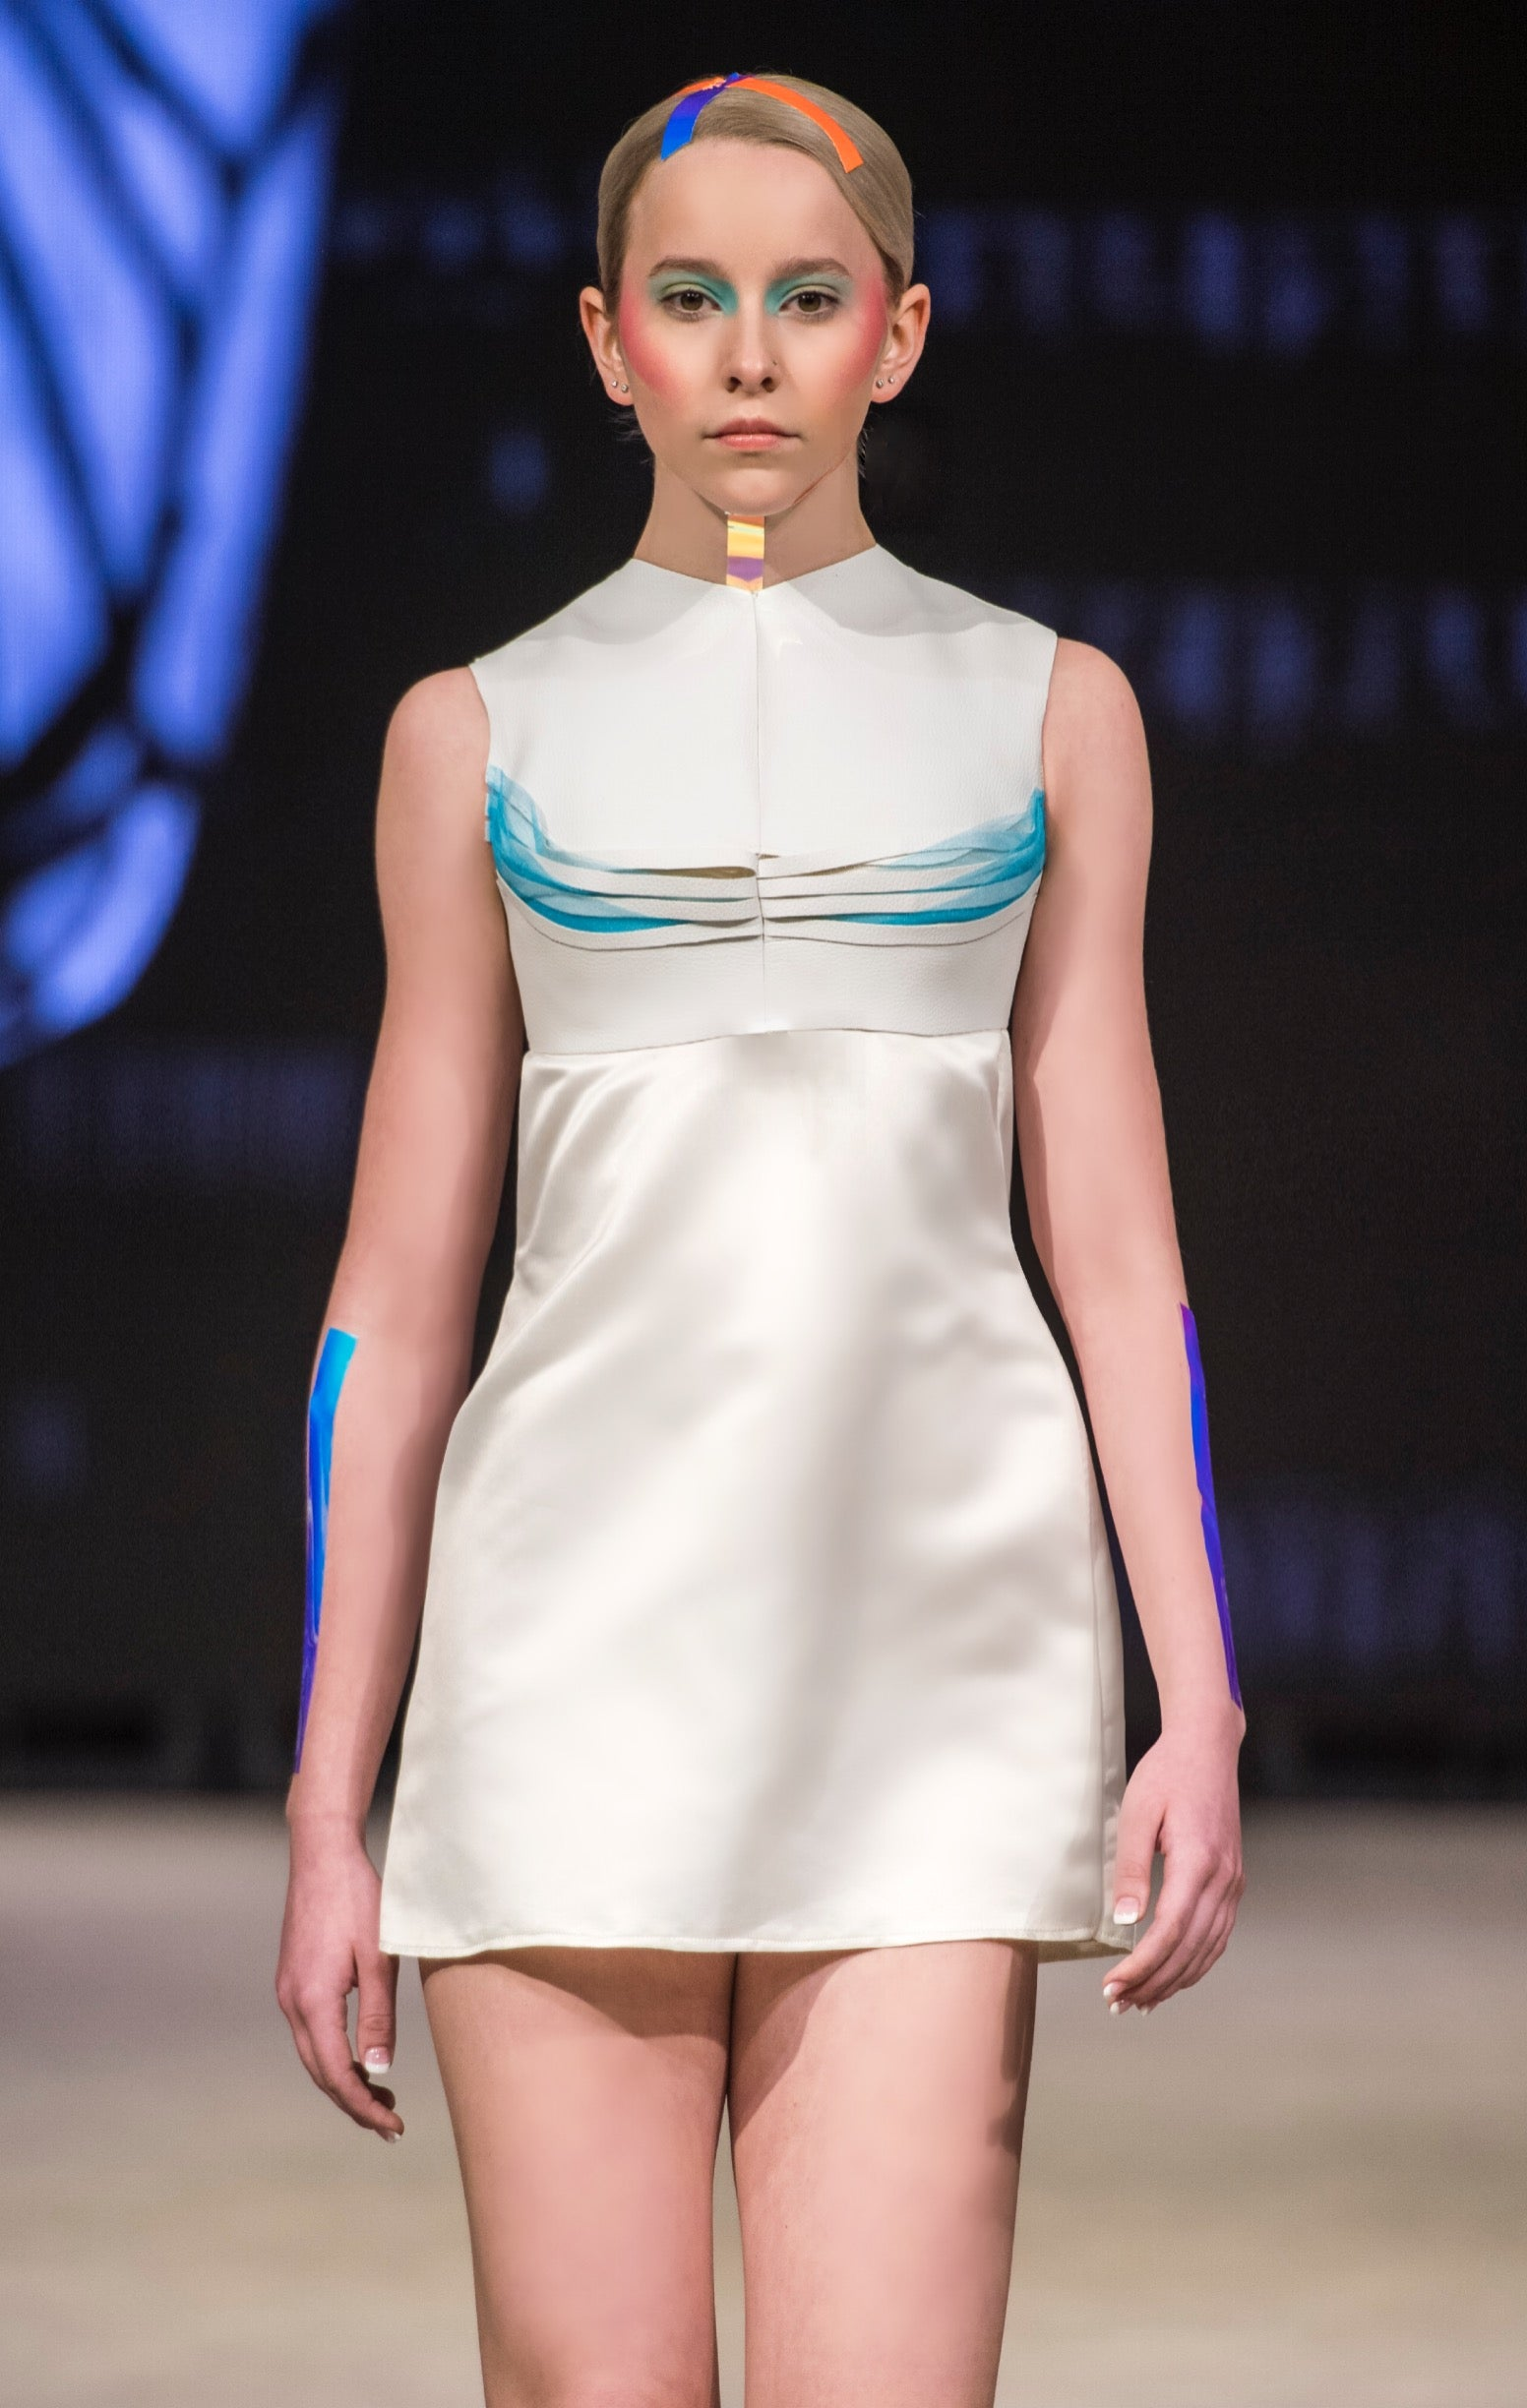 White cotton dress with leather back zip crop top  white leather and neon blue origami crop top